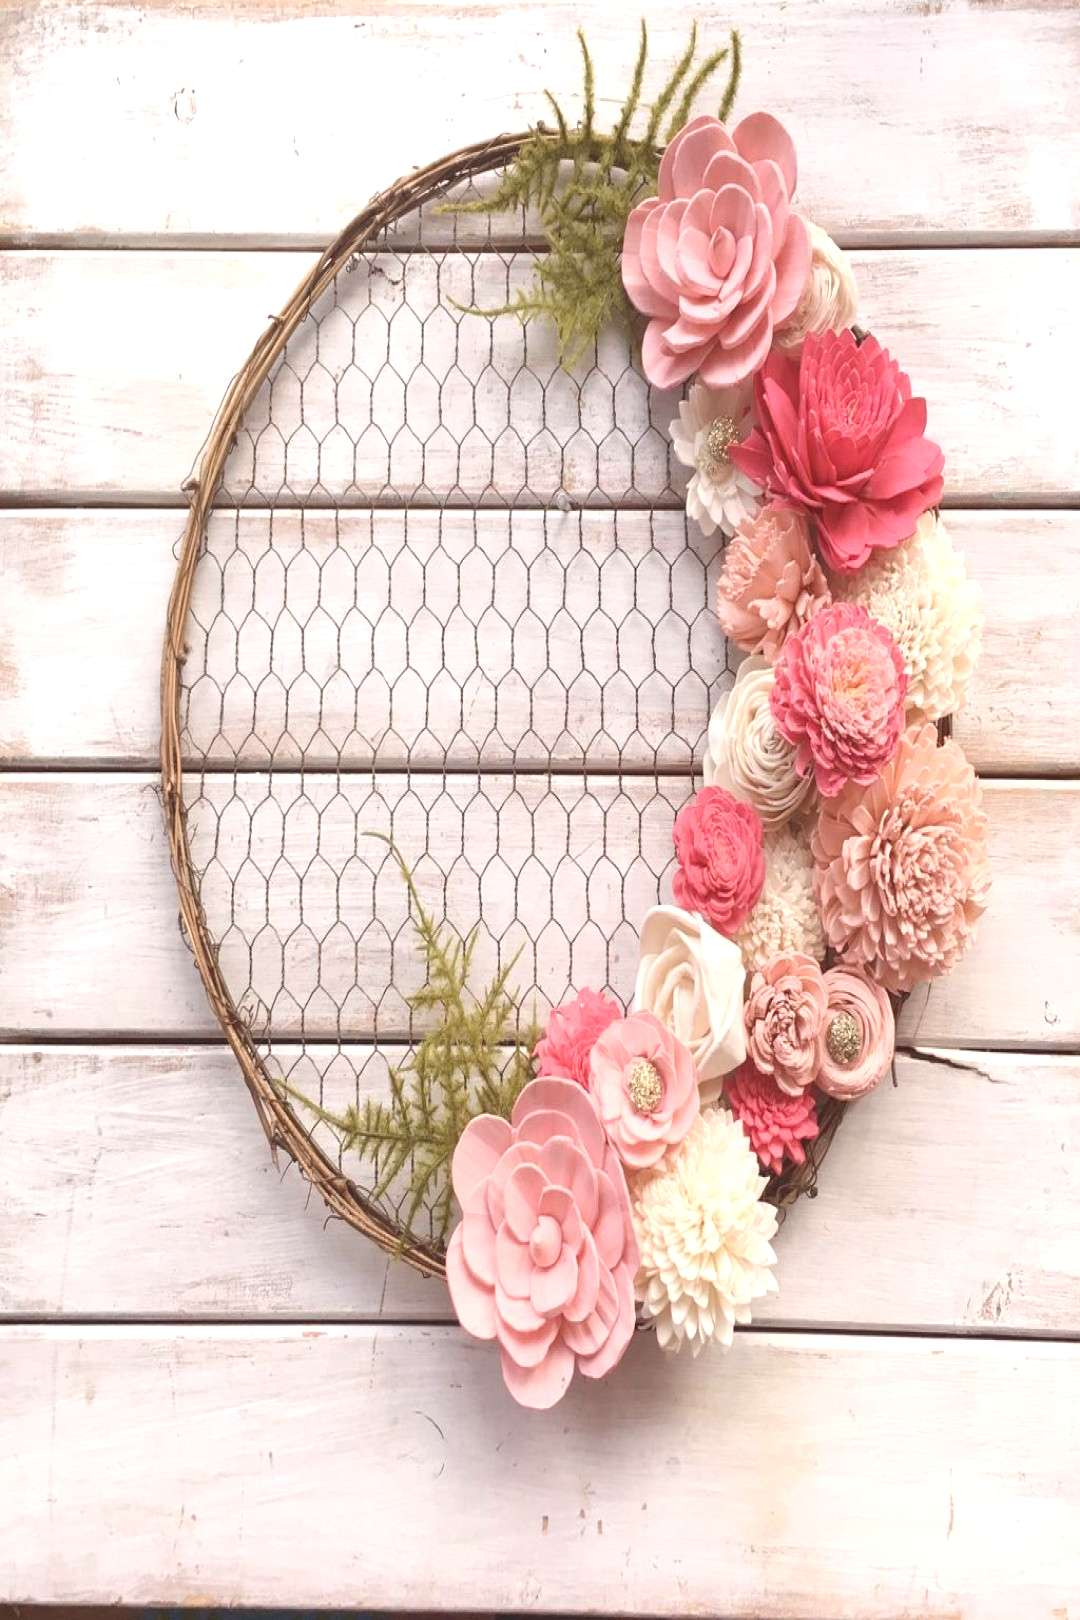 14 inch Round Chicken Wire Wreath Form - Oh! Youre Lovely - Sola Wood Flowers